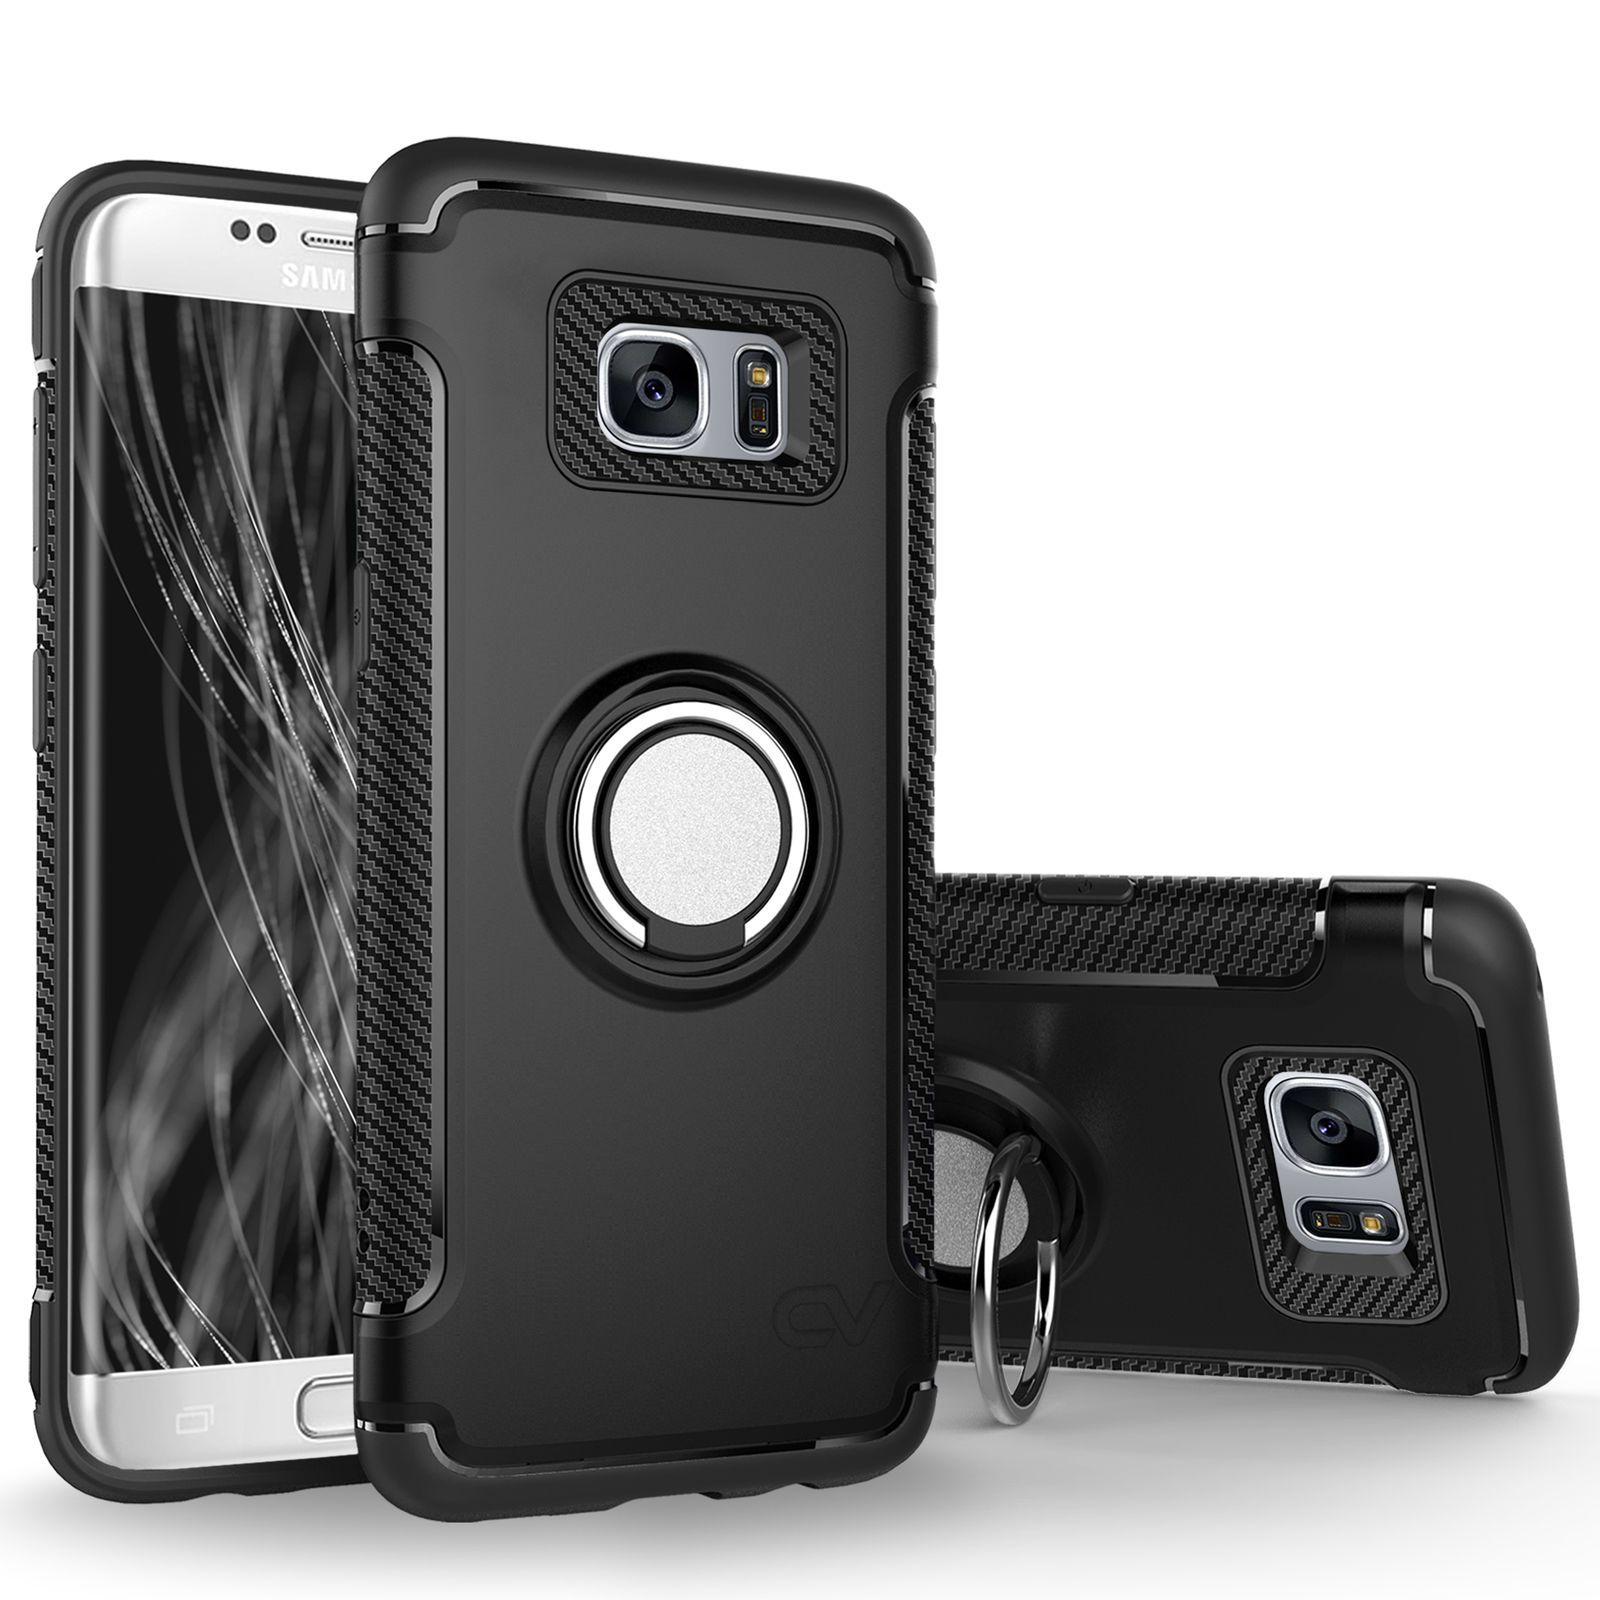 los angeles d7659 218f5 Details about For Galaxy S7 Case Finger Ring Holder Hybrid 360 KickStand  Protective Case Cover